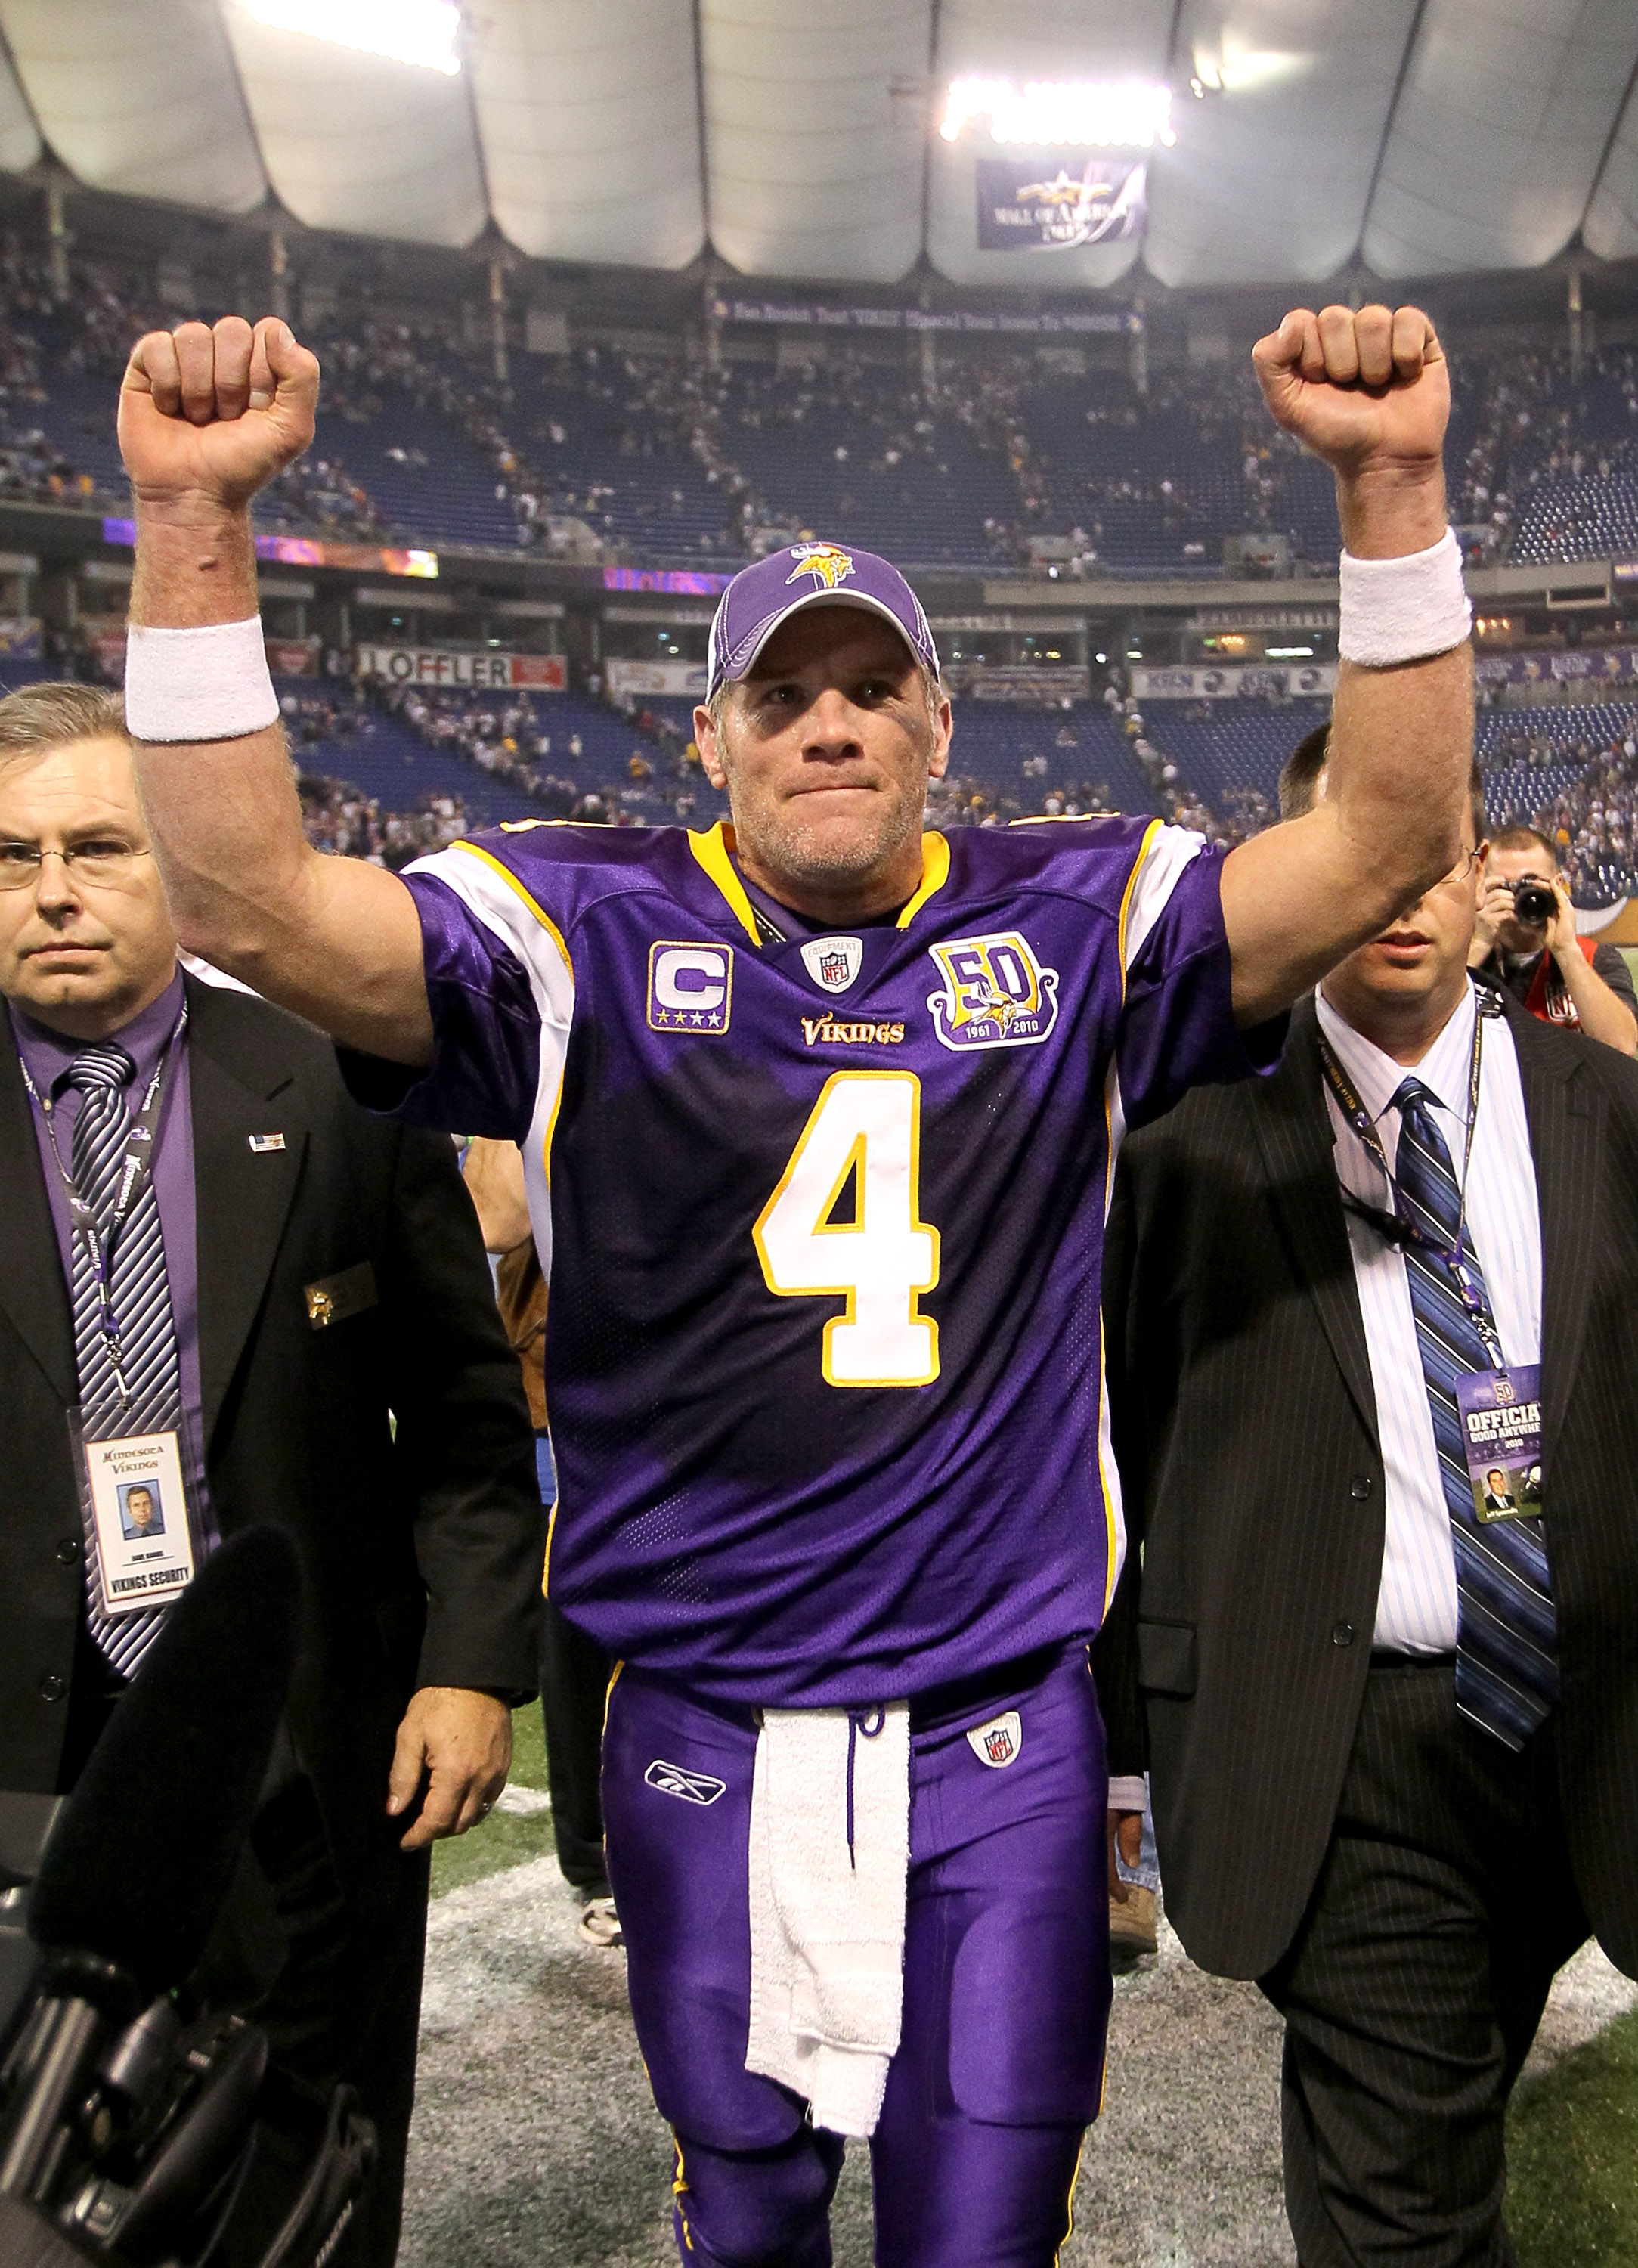 MINNEAPOLIS - NOVEMBER 7:  Quarterback Brett Favre #4 of the Minnesota Vikings celebrates as he heaves the field after the game with the Arizona Cardinals at Hubert H. Humphrey Metrodome on November 7, 2010 in Minneapolis, Minnesota.  The Vikings won 27-2